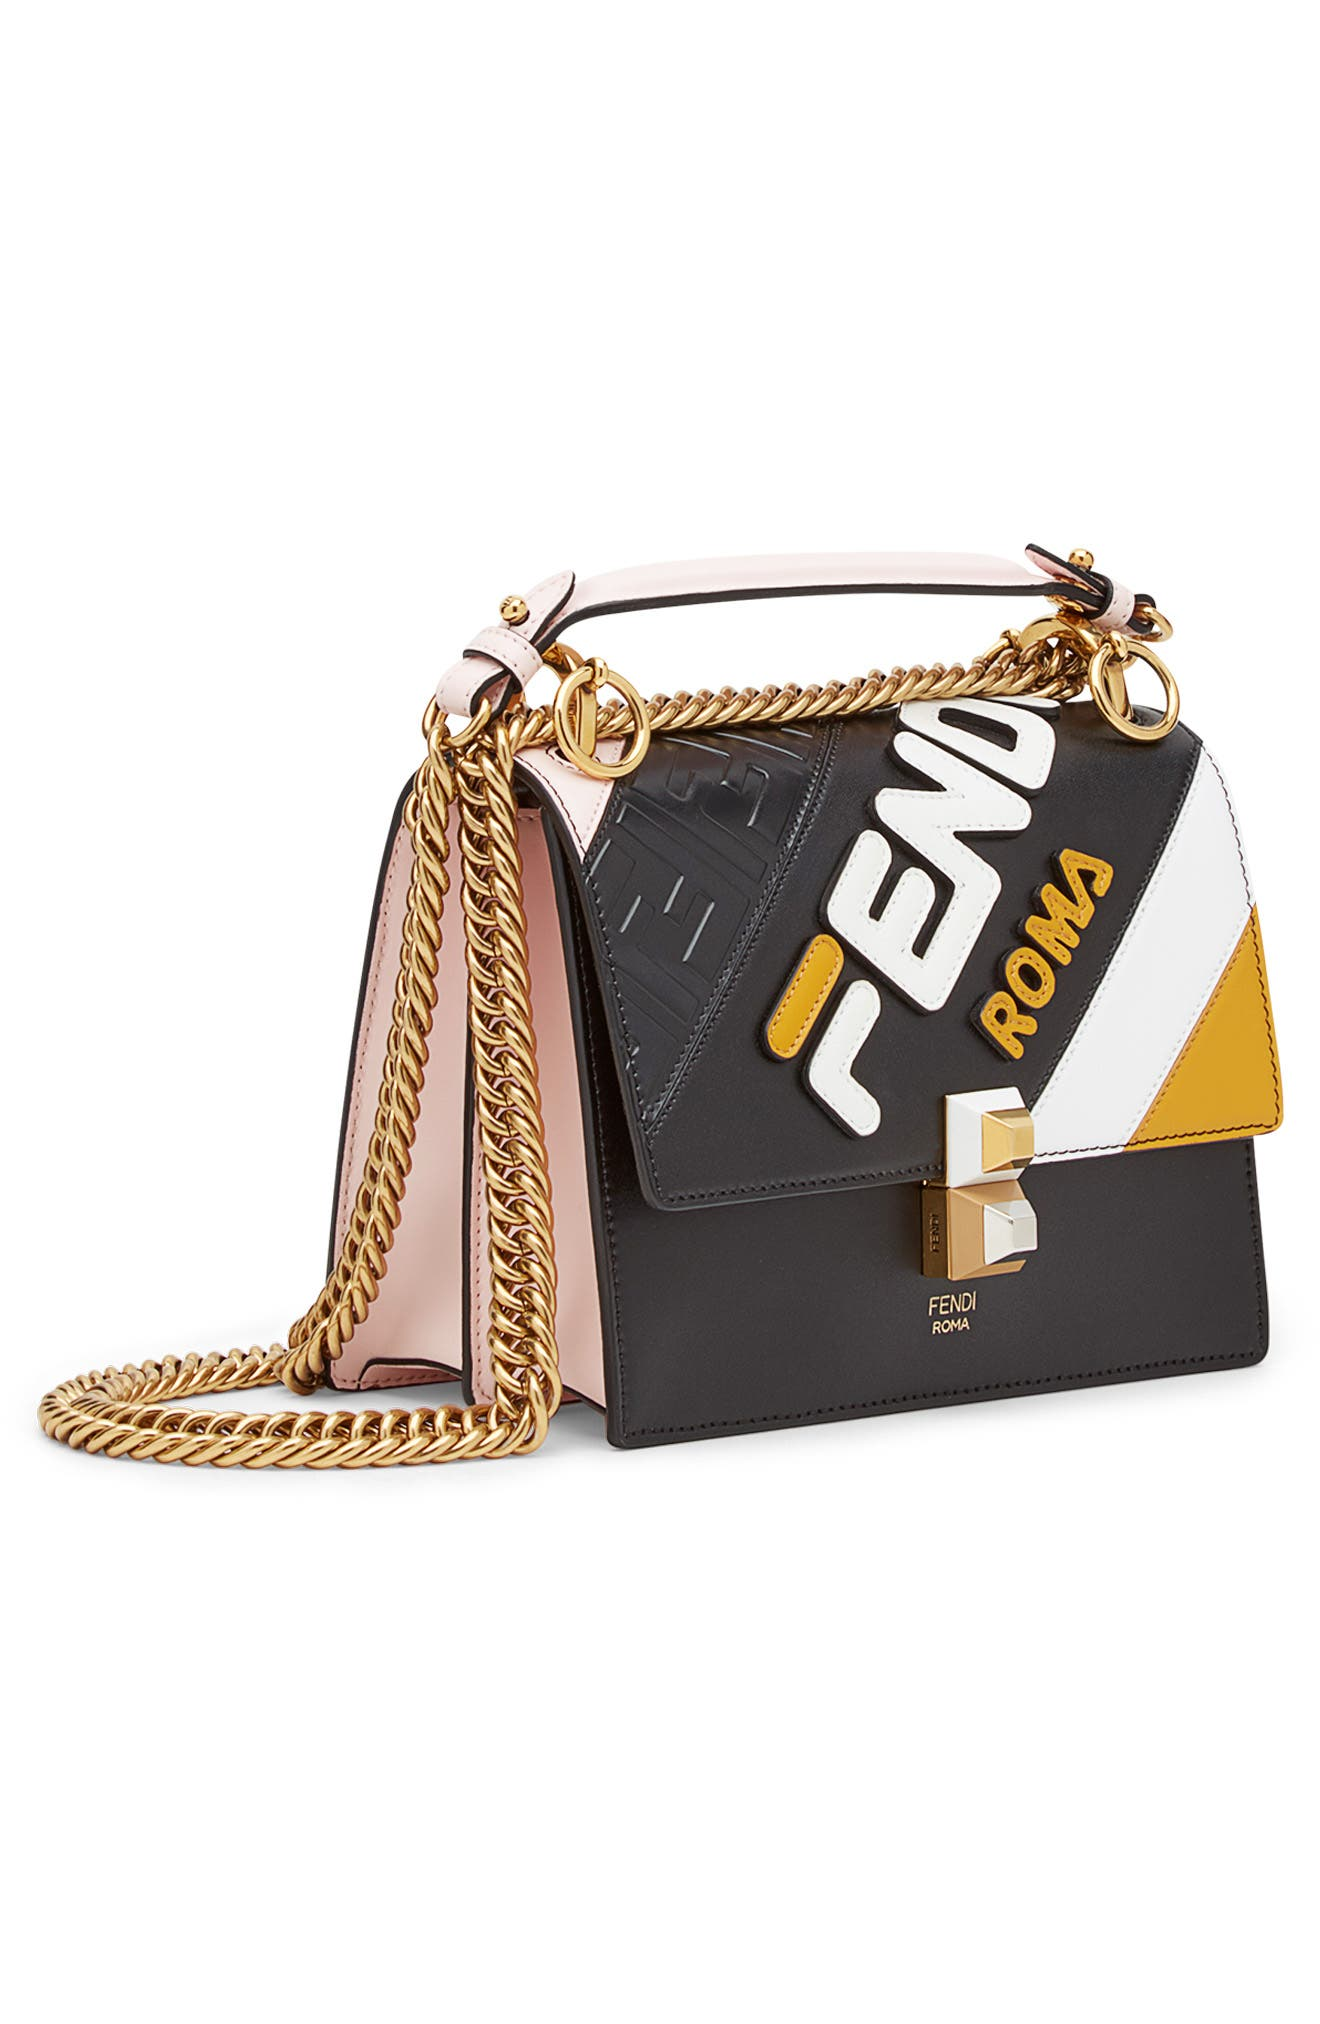 x FILA Small Kan I Mania Logo Shoulder Bag,                             Alternate thumbnail 4, color,                             NERO/ CONFETTO MULTI